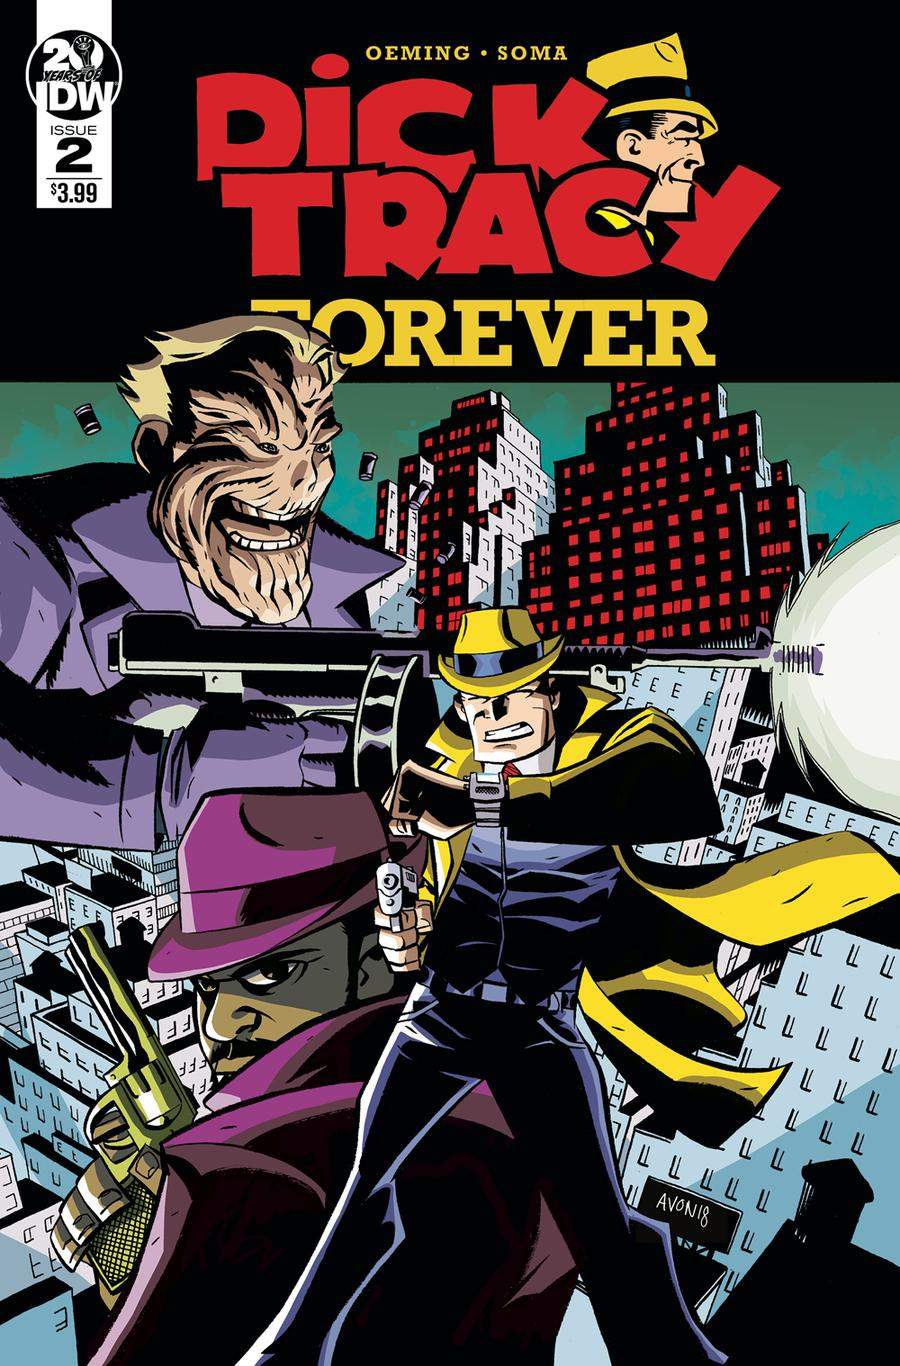 Dick Tracy Forever #2 Cover A Regular Michael Avon Oeming Cover